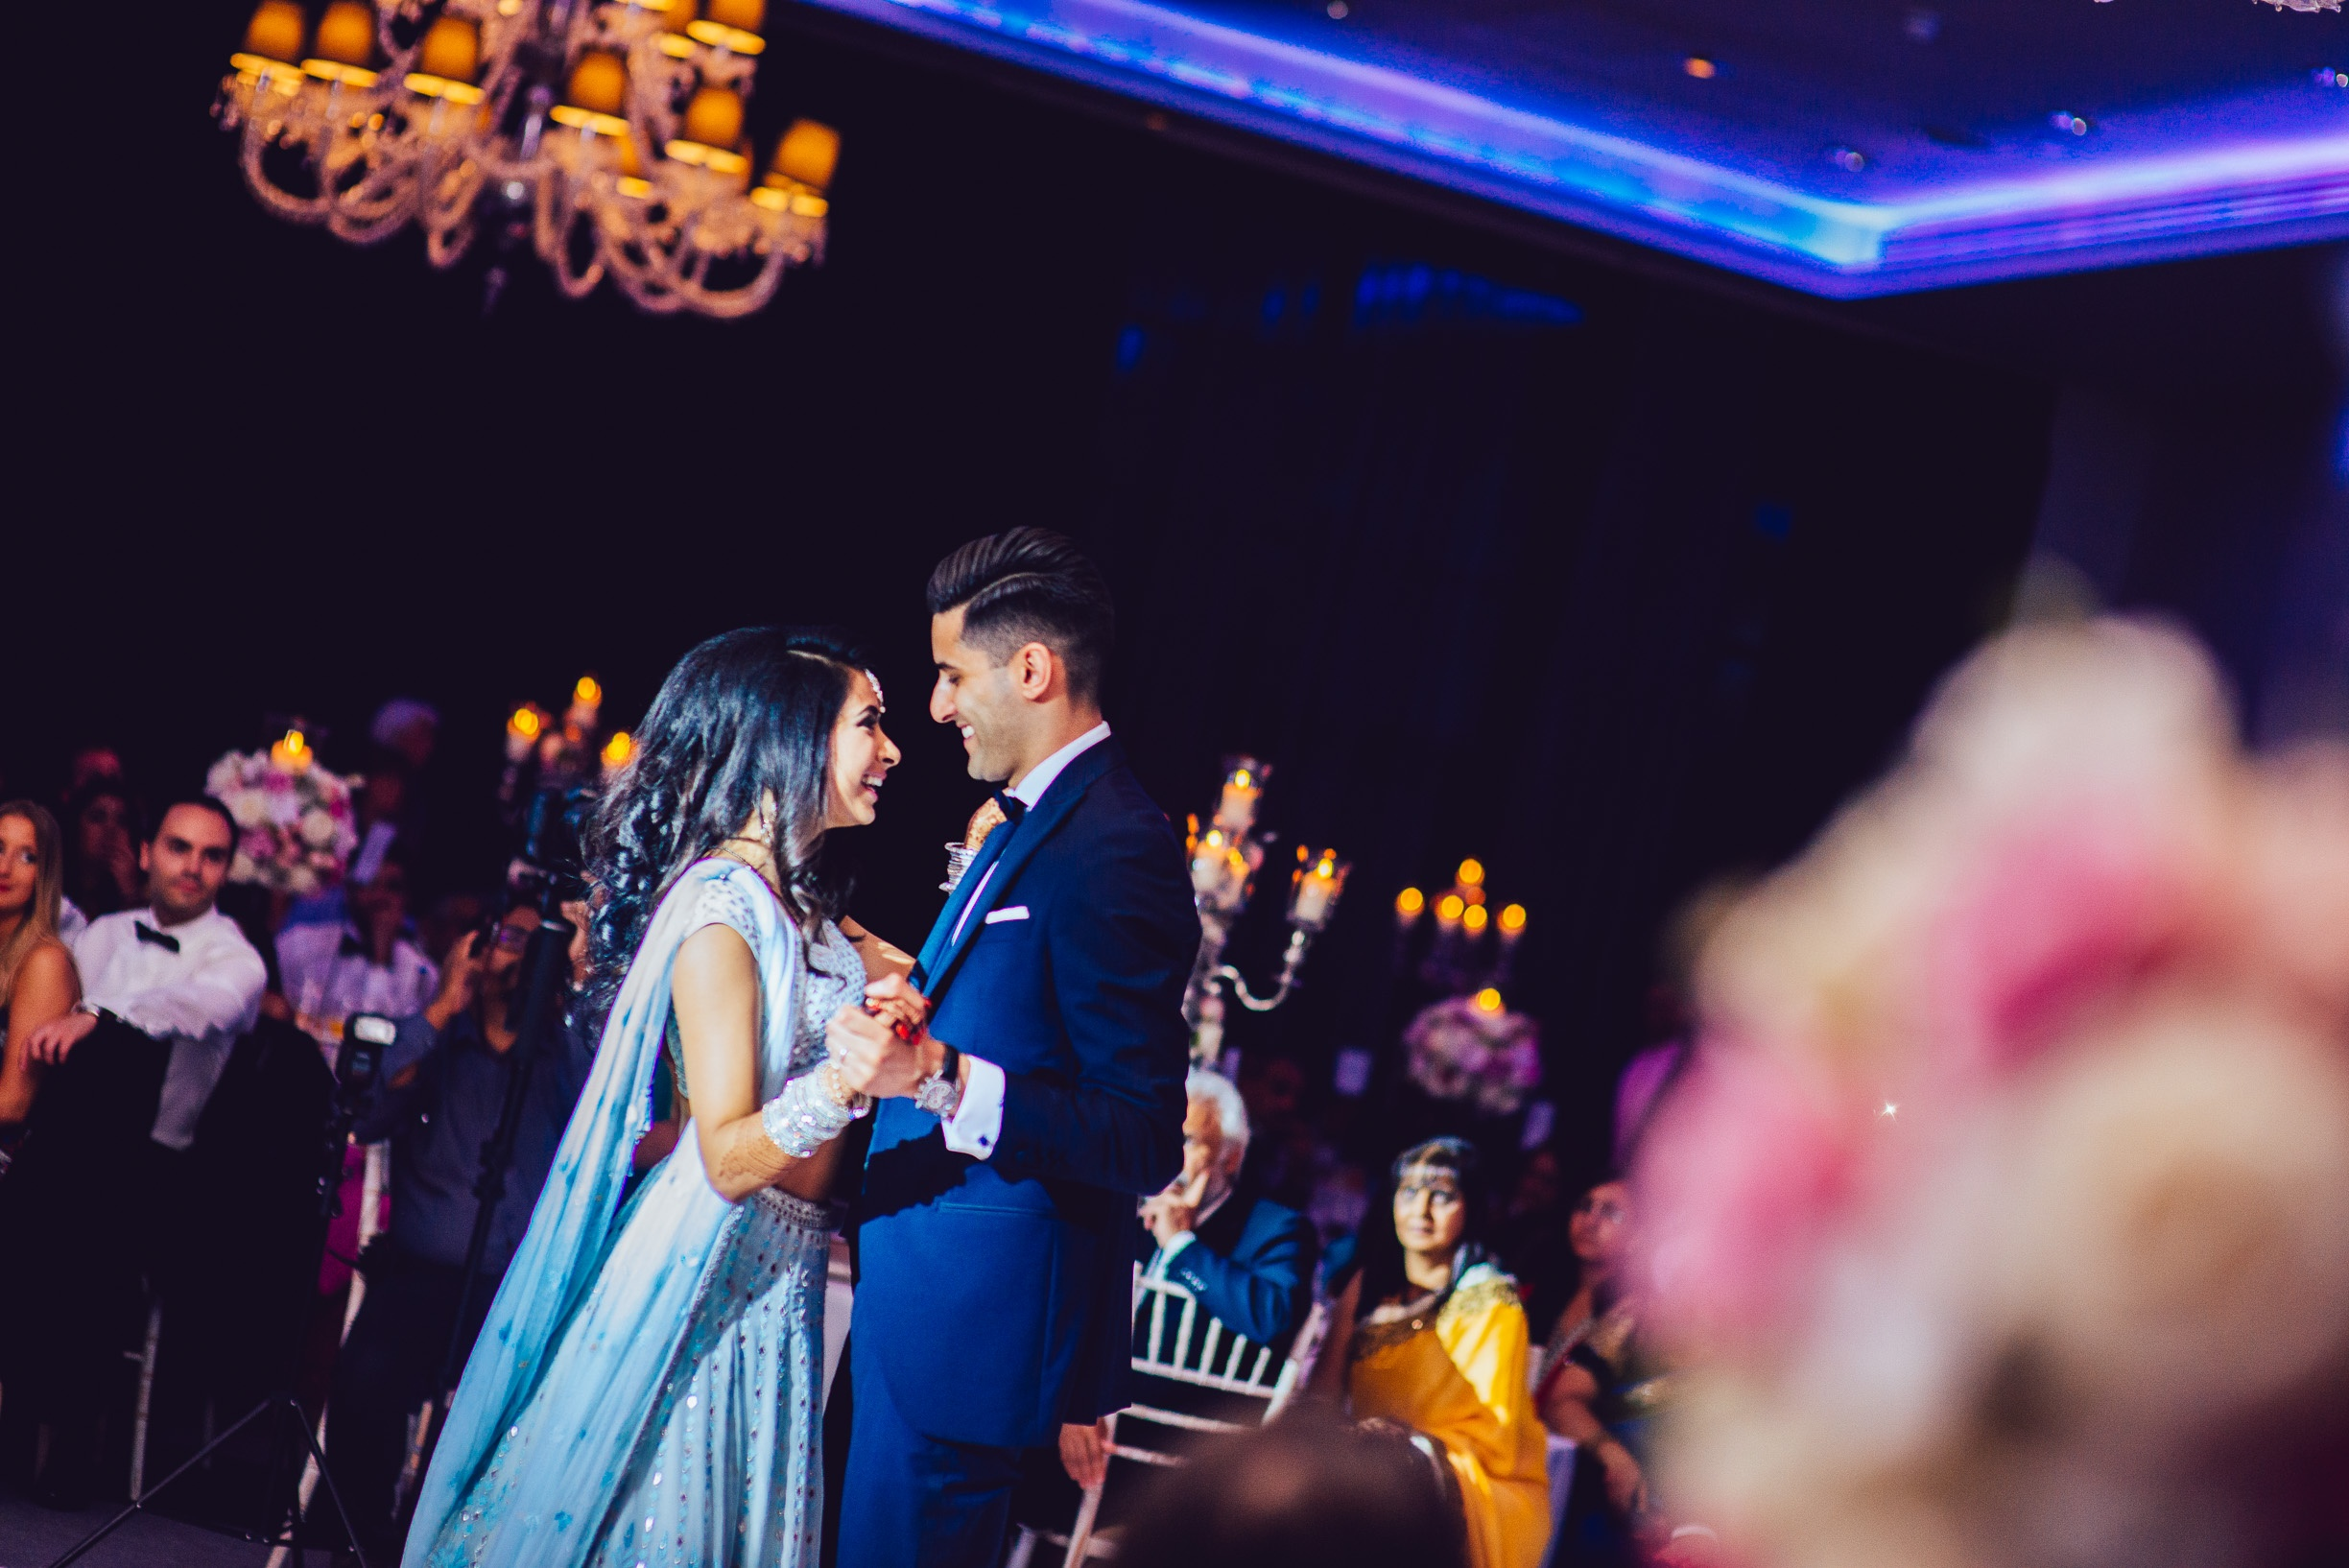 amit&ceema_eden_moments_wedding_photography-44